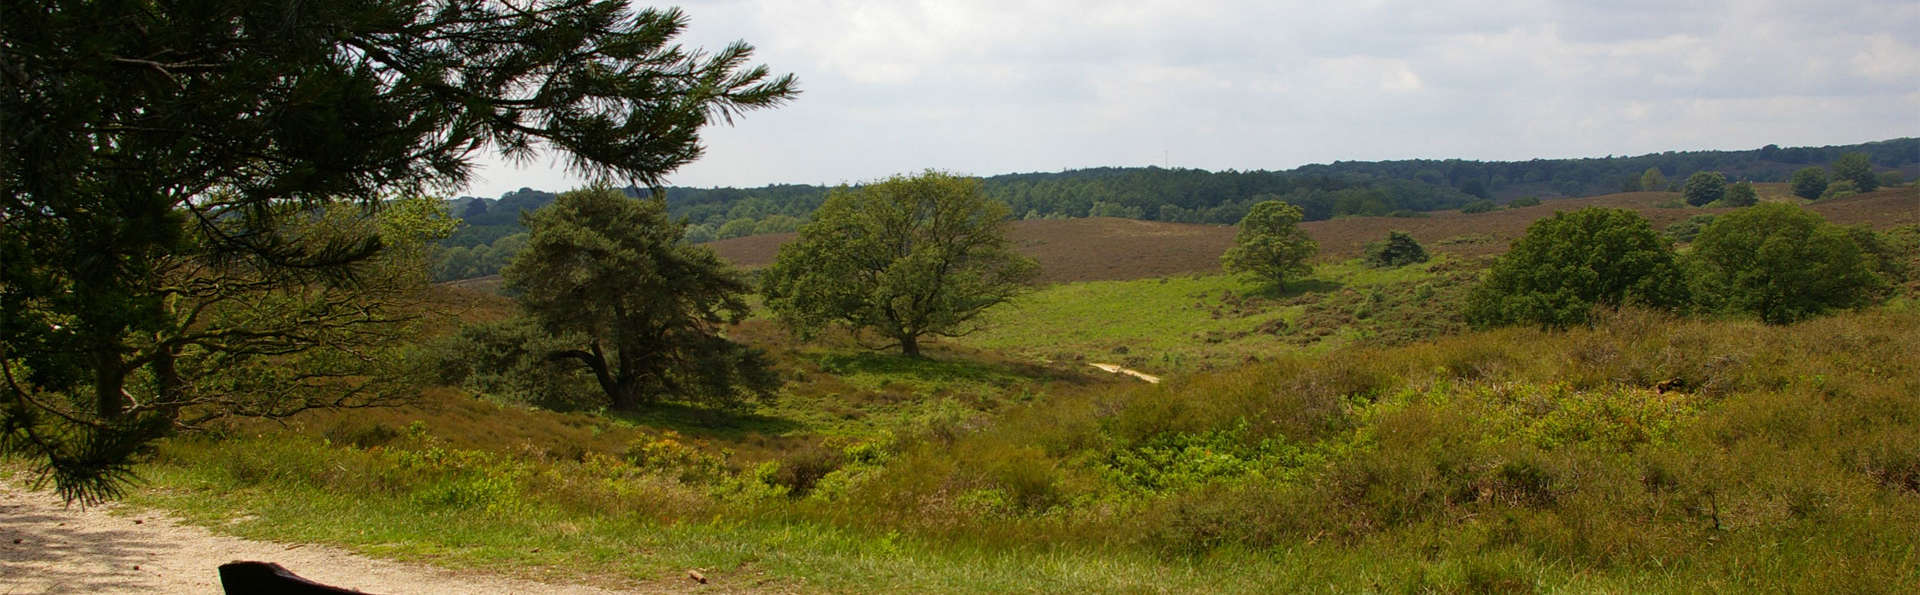 Fletcher De Buunderkamp - edit_veluwe.jpg